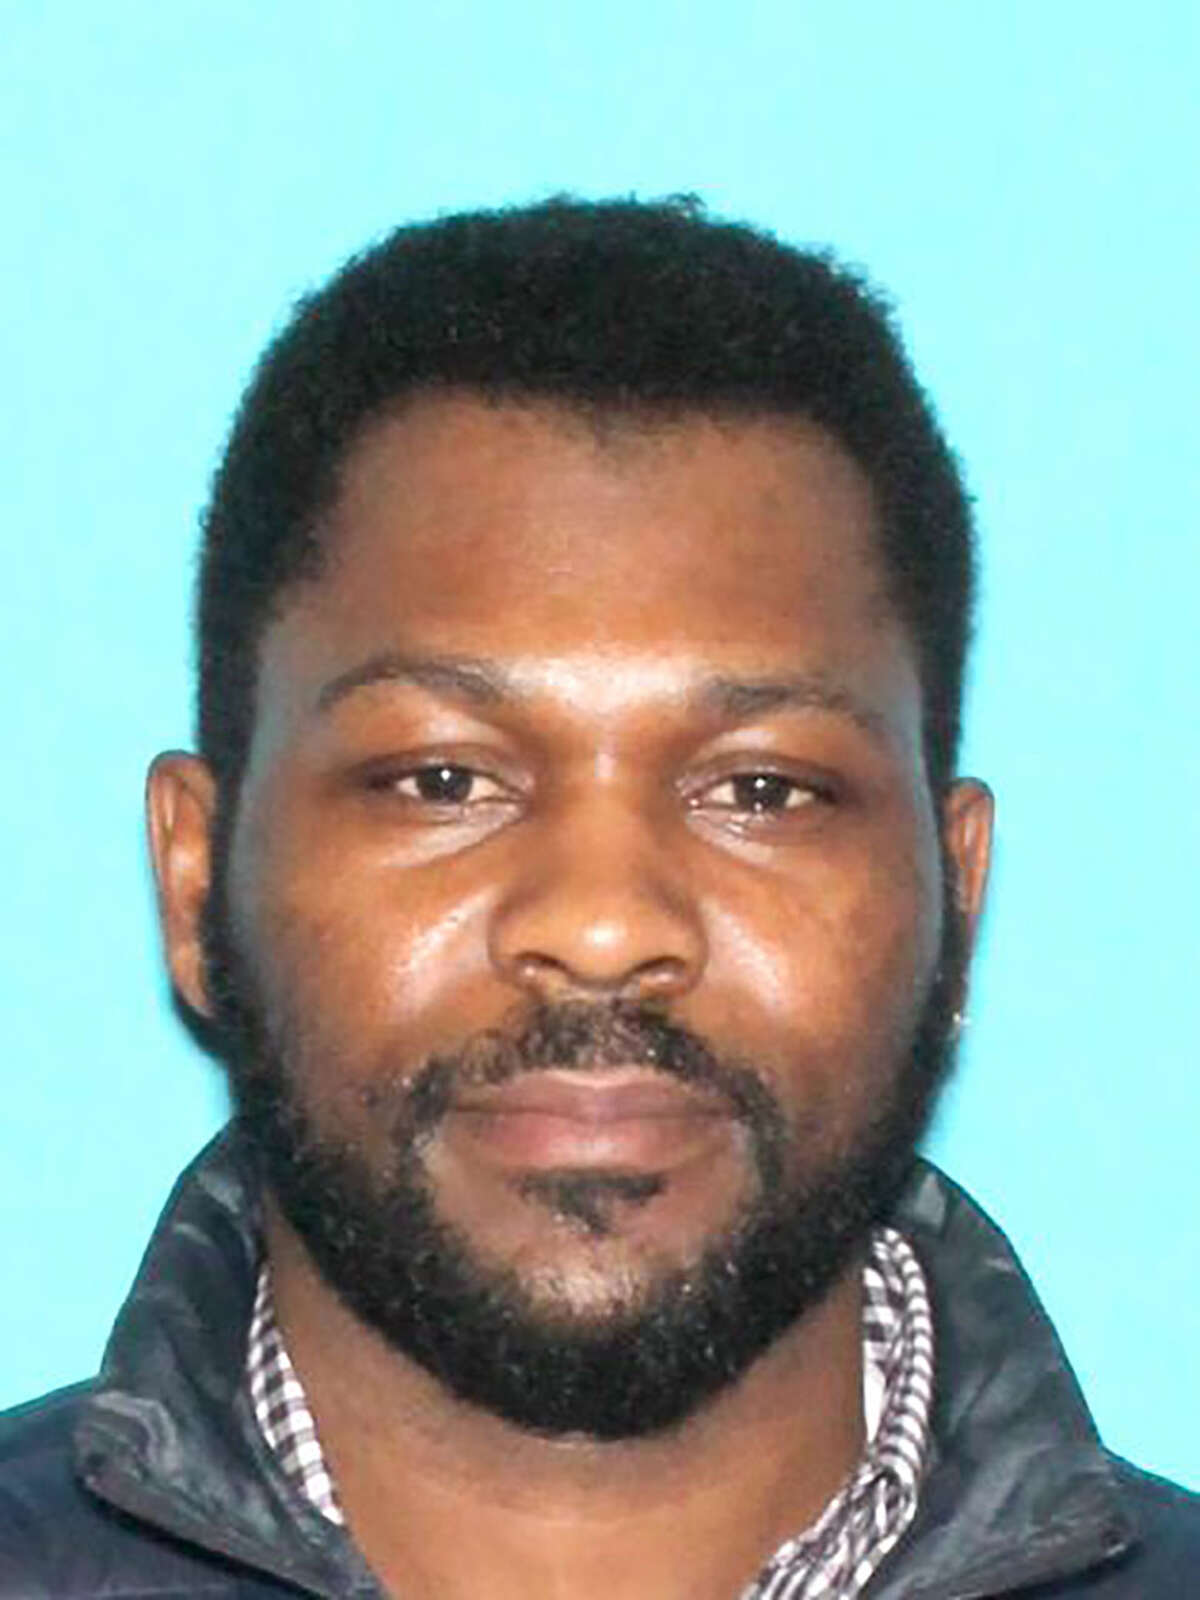 Police are searching for 36-year-old Leroy Headley in connection to a South Burlington, Vermont, homicide. Police believe Headley killed the woman he lived with on May 3, 2018. Just over two weeks later, his car was found abandoned on Sherman Street in Albany, N.Y.